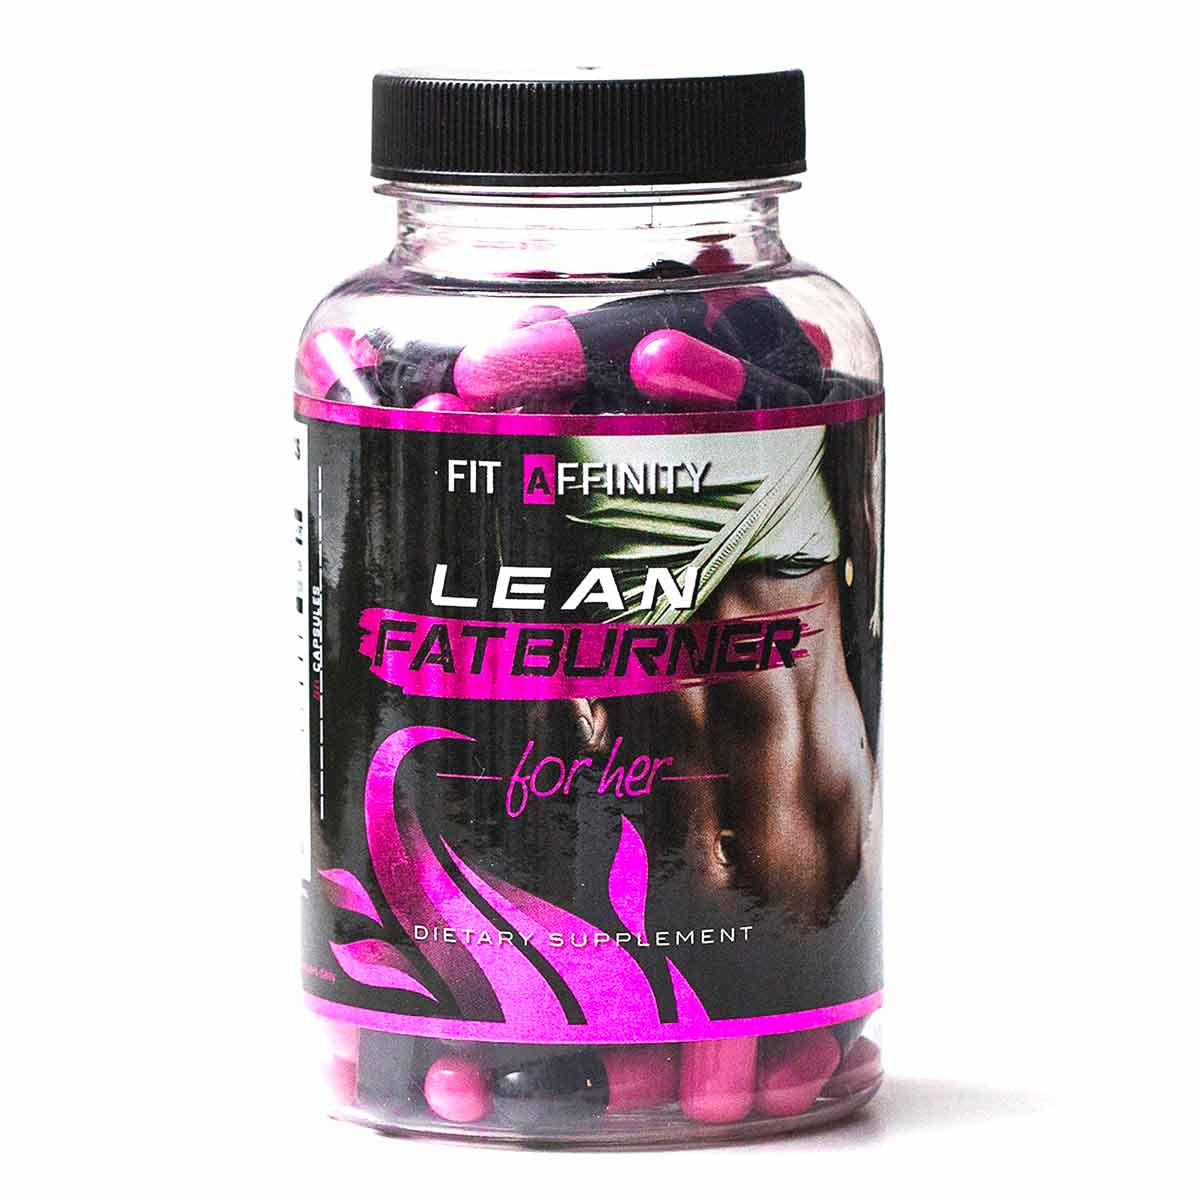 Fit Affinity Lean Fat Burner For Her